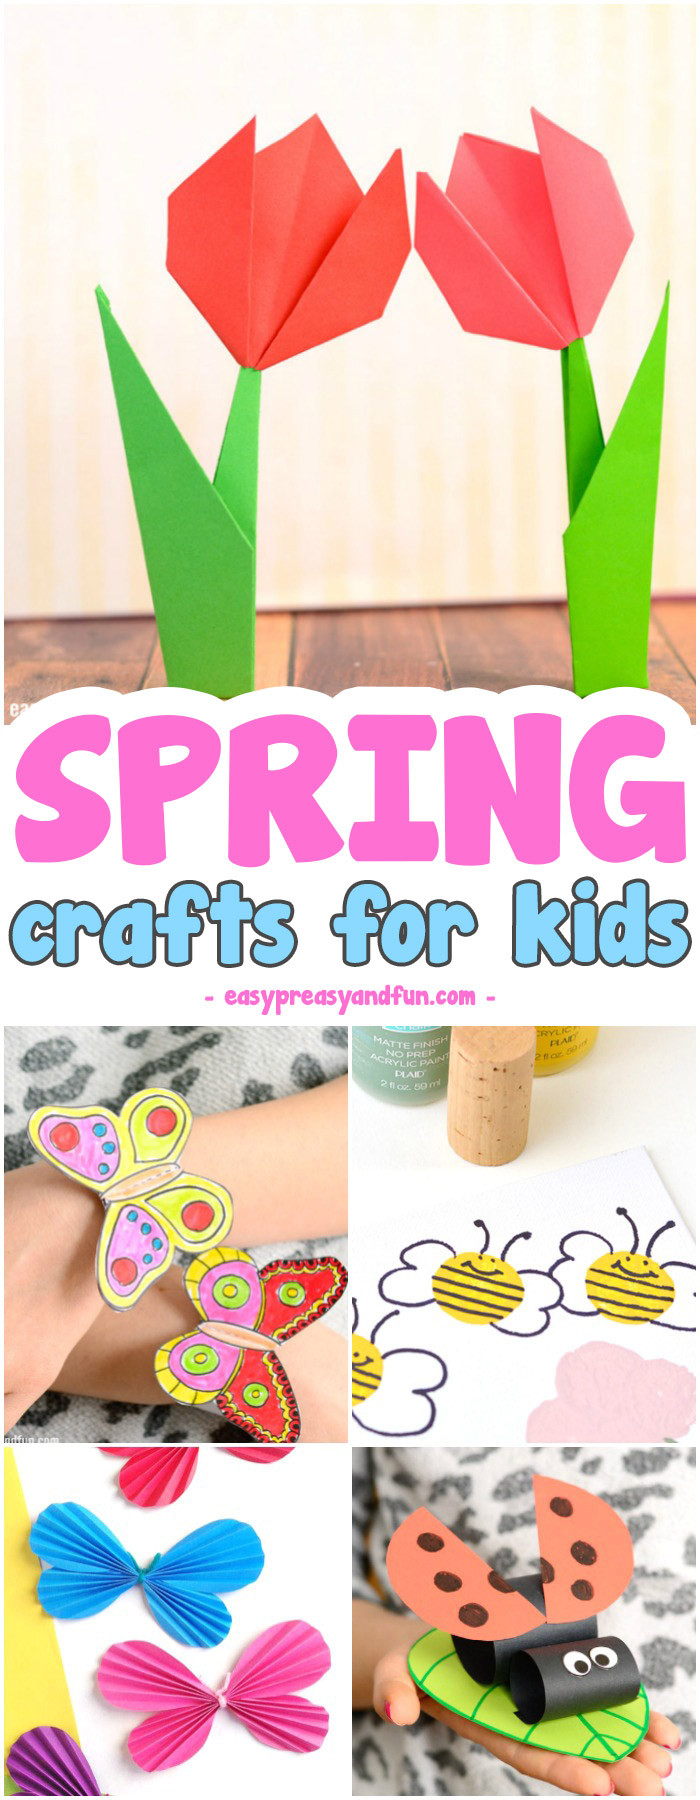 Best ideas about Cool Arts And Crafts For Kids . Save or Pin Spring Crafts for Kids Art and Craft Project Ideas for Now.